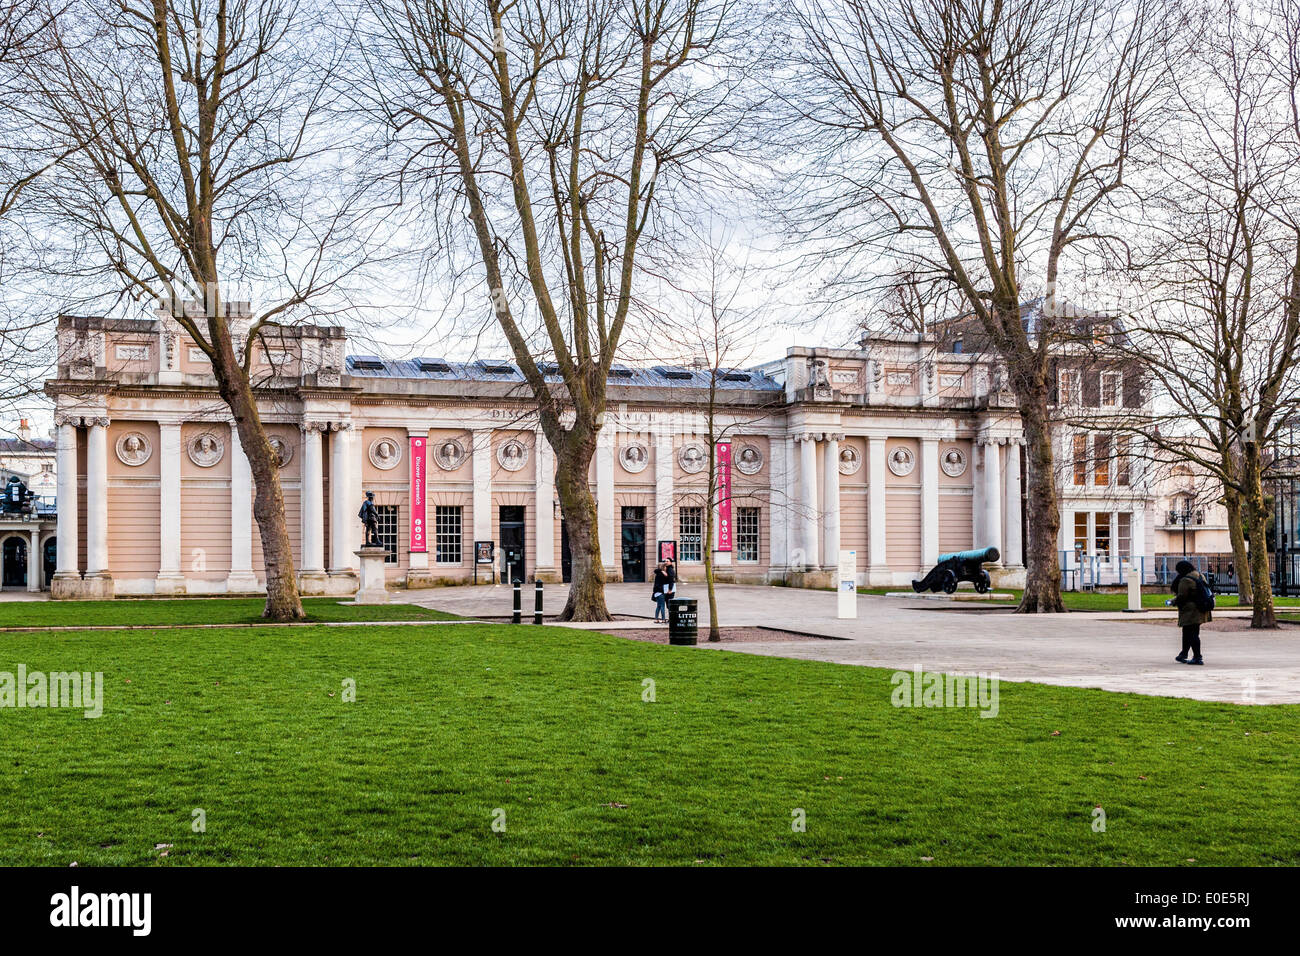 Discover Greenwich Visitor Centre at the Old Royal Naval College - Ornate Grade ll listed Pepys building, Greenwich, London, UK - Stock Image